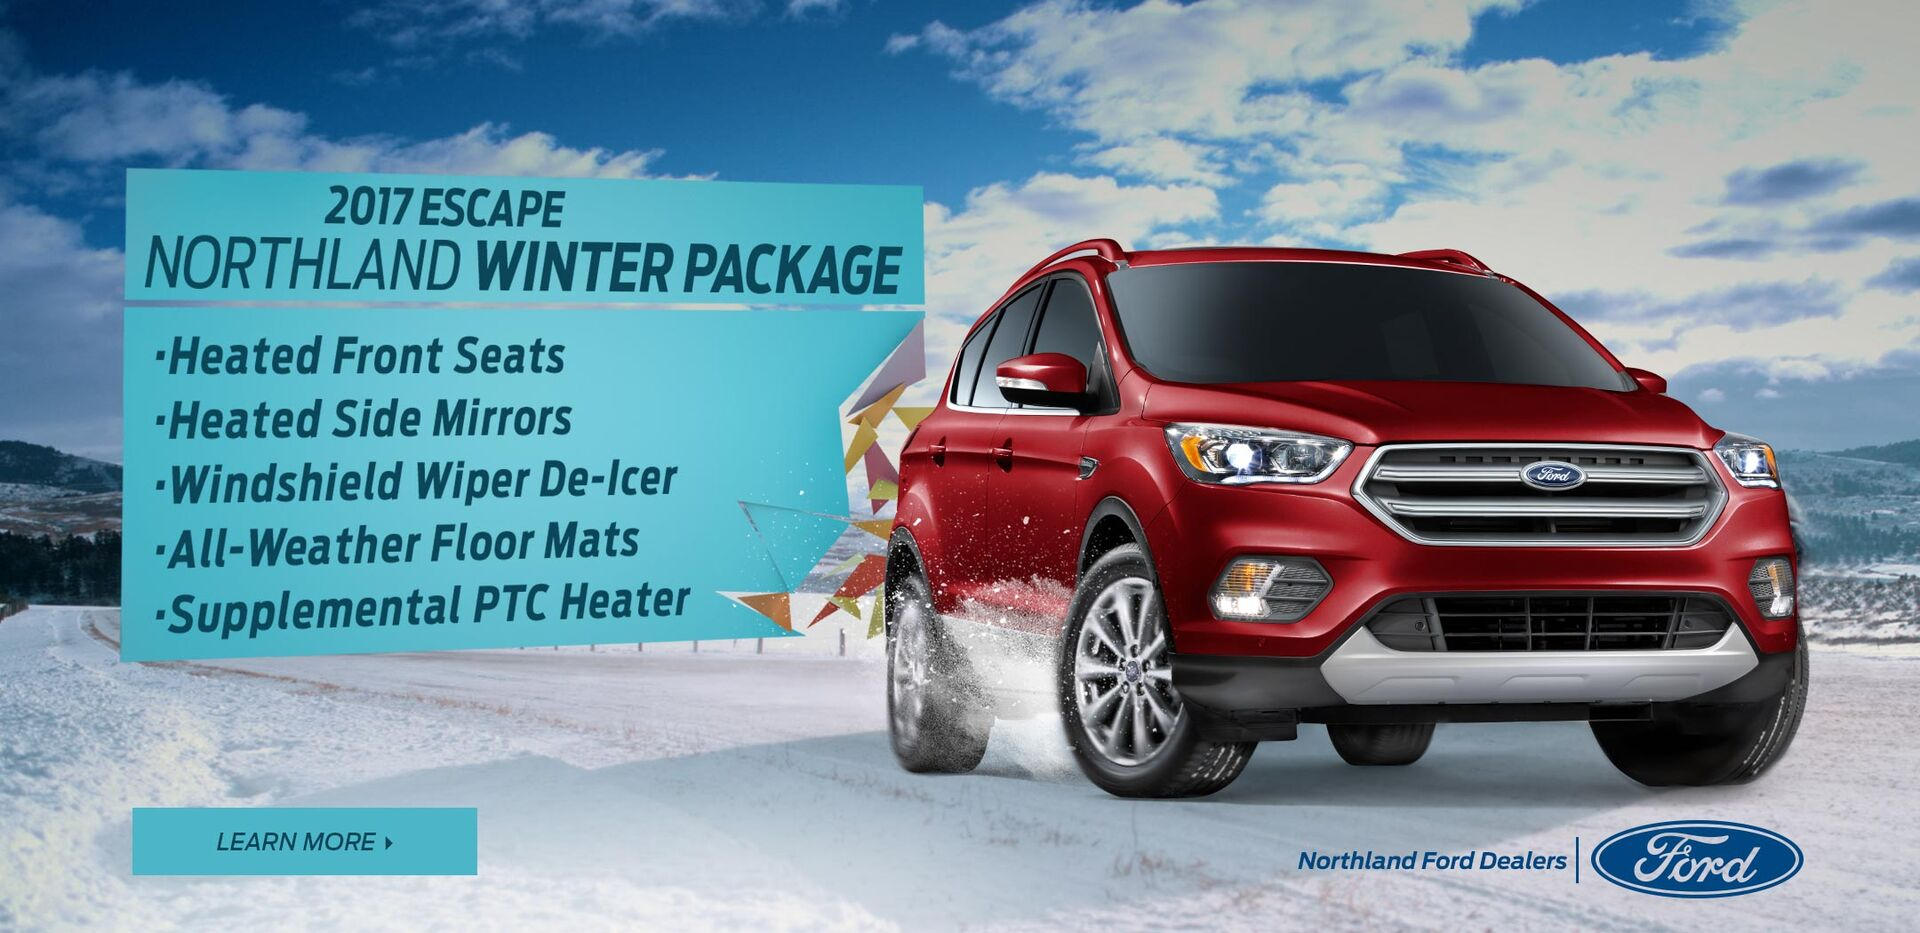 2017 Escape Winter Package